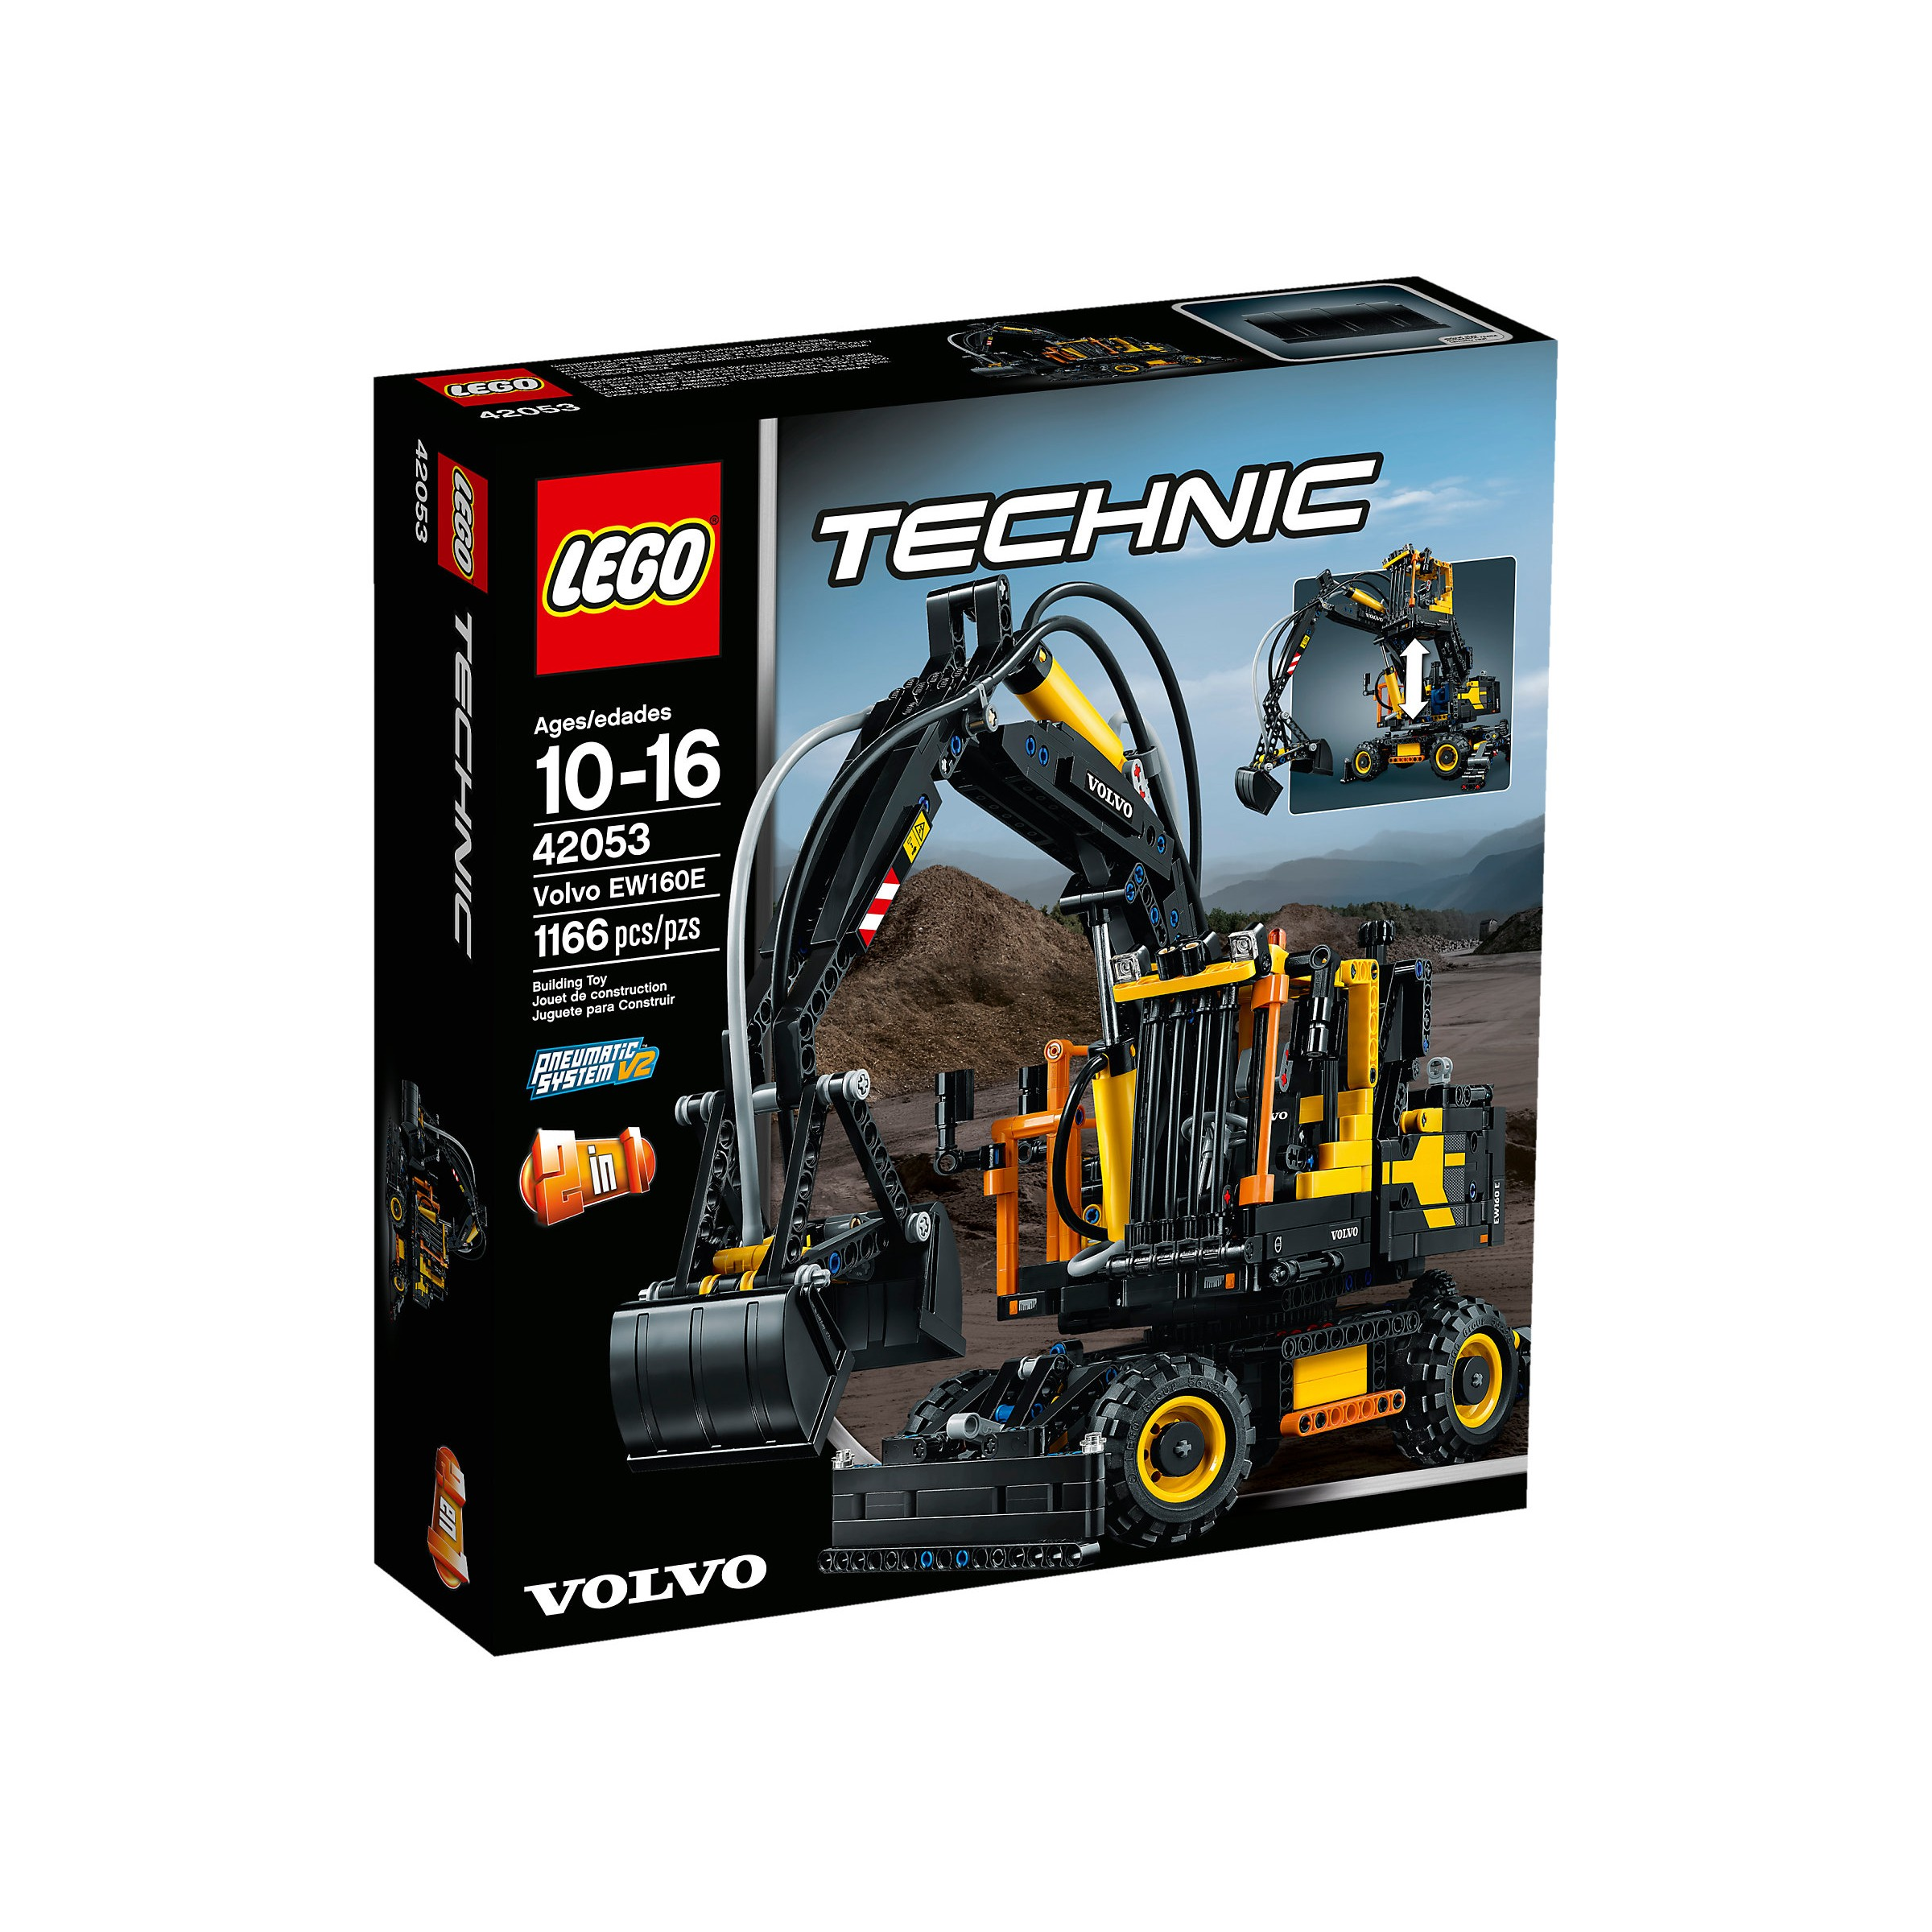 lego 42053 technic volvo ew160e at hobby warehouse. Black Bedroom Furniture Sets. Home Design Ideas